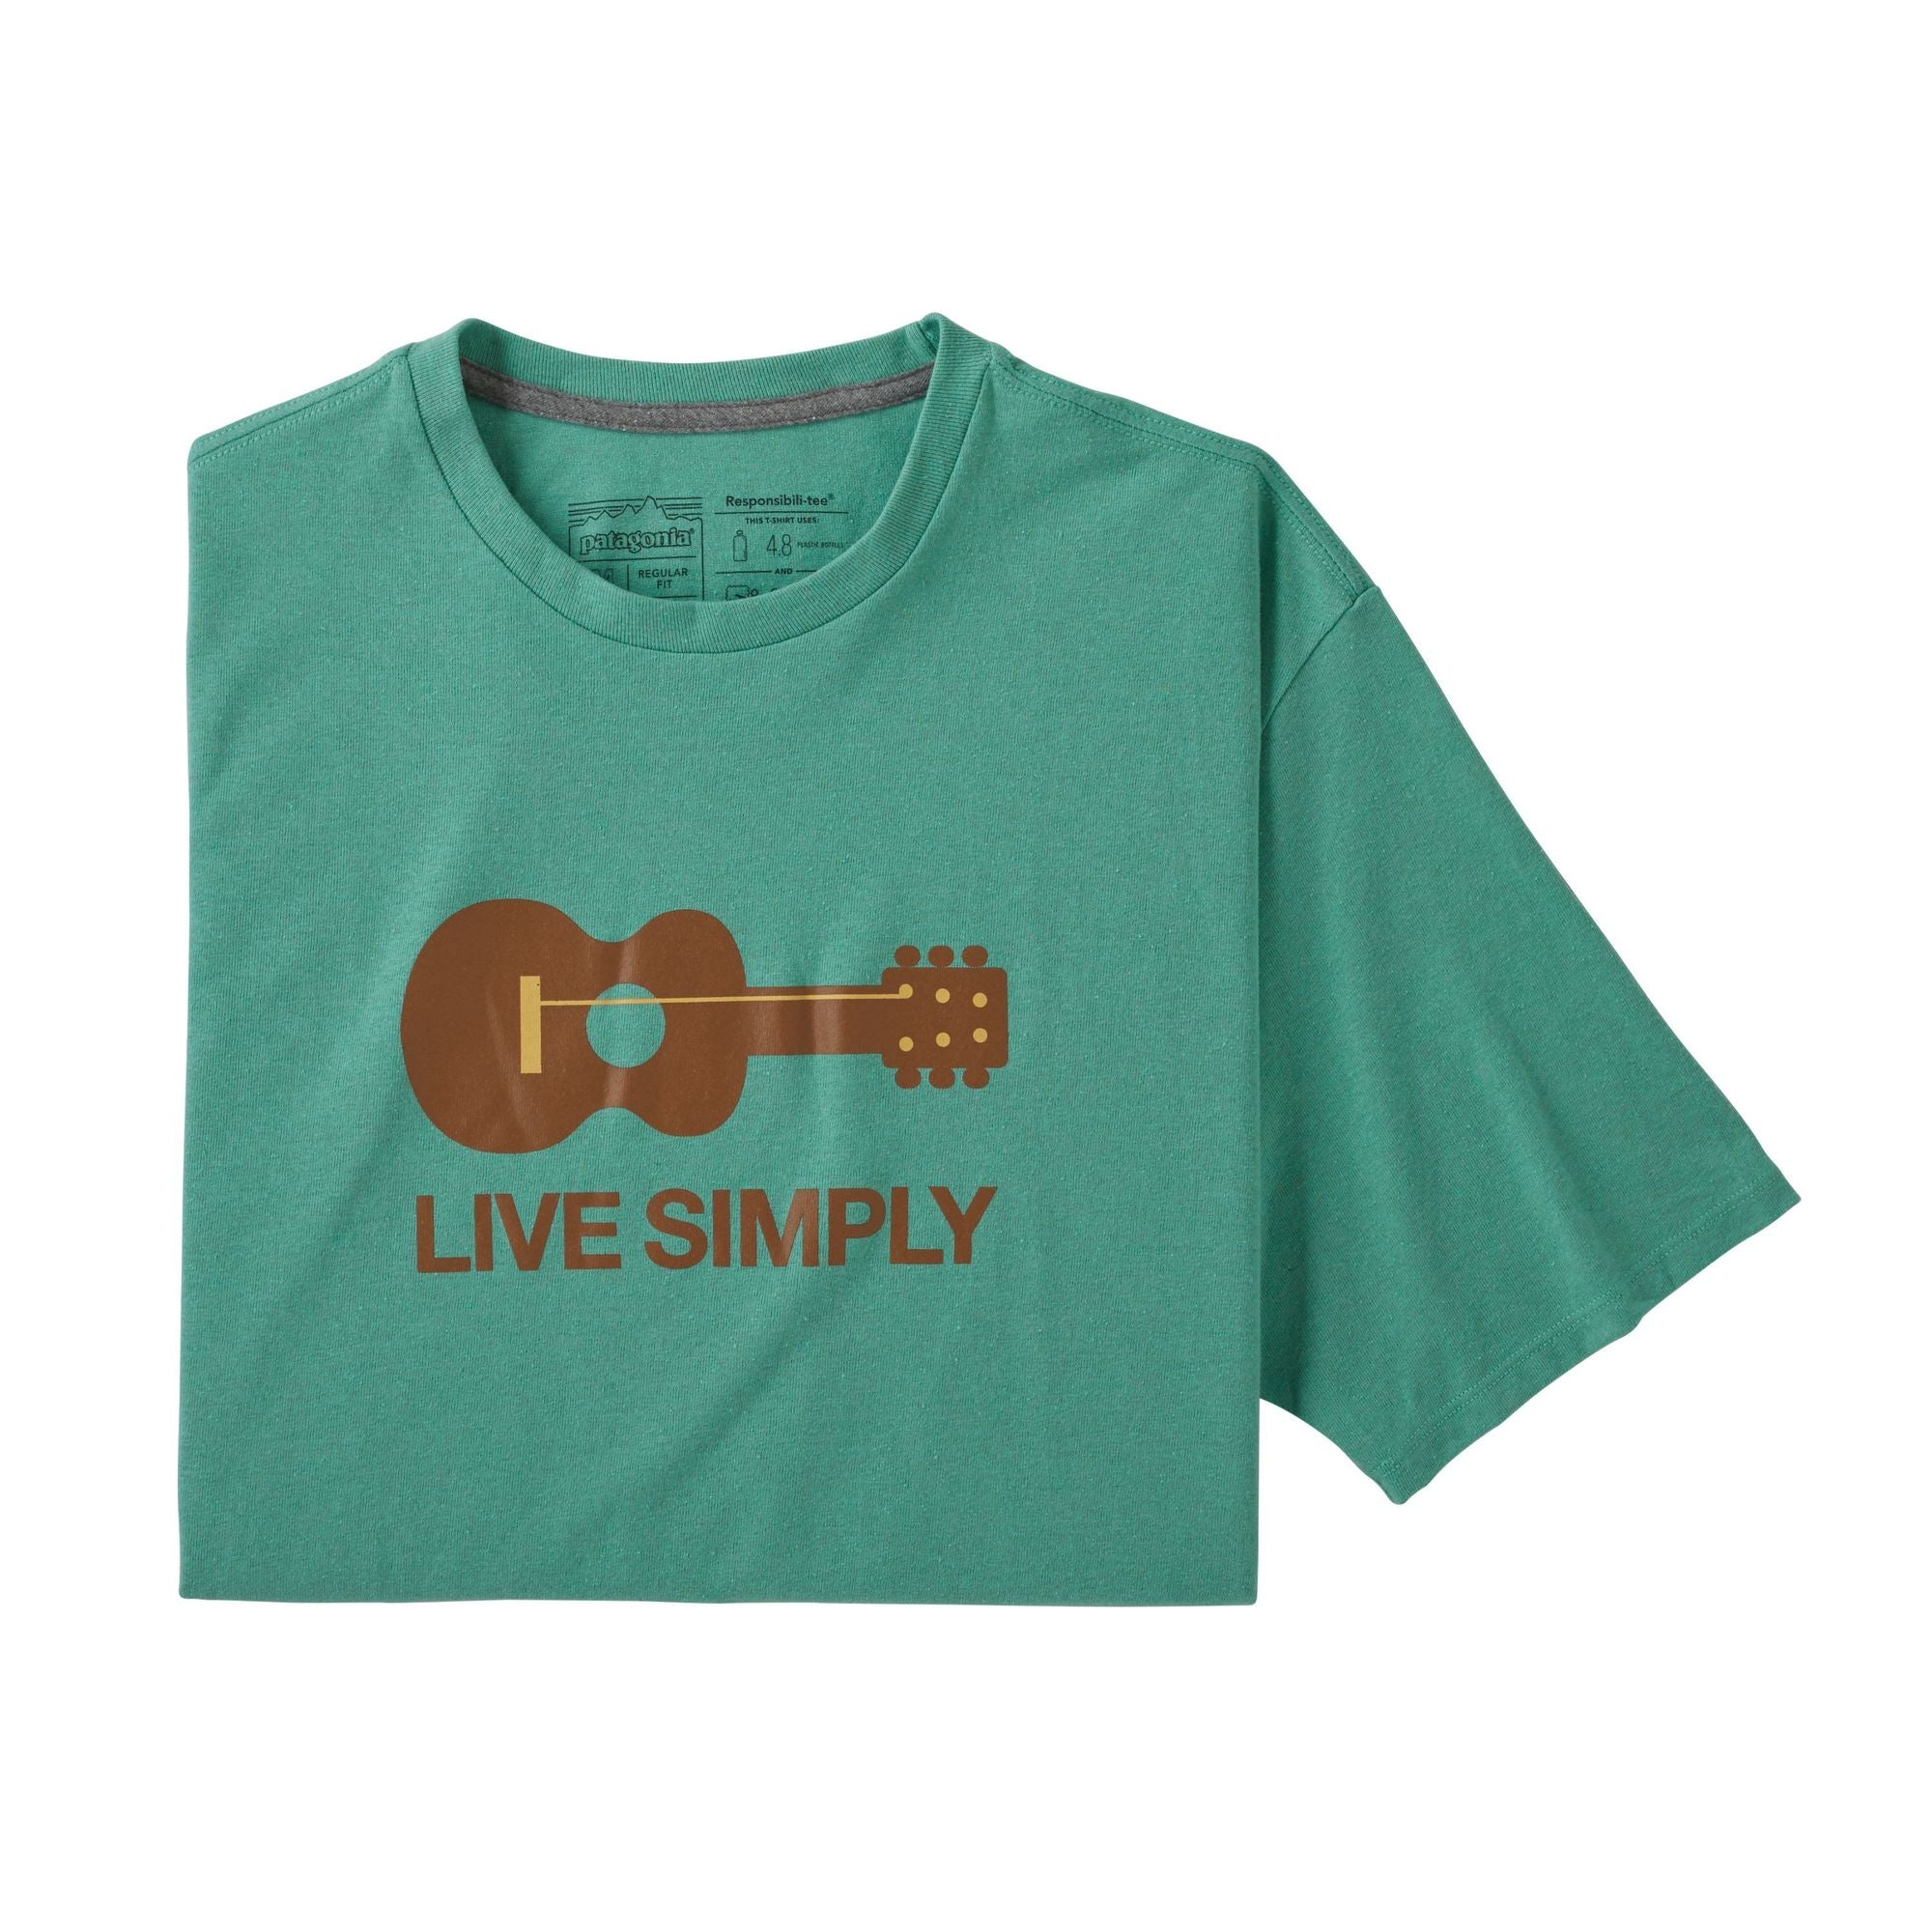 Patagonia Live Simply Guitar Responsibili-Tee (Men's) - Light Beryl Green - Find Your Feet Australia Hobart Launceston Tasmania